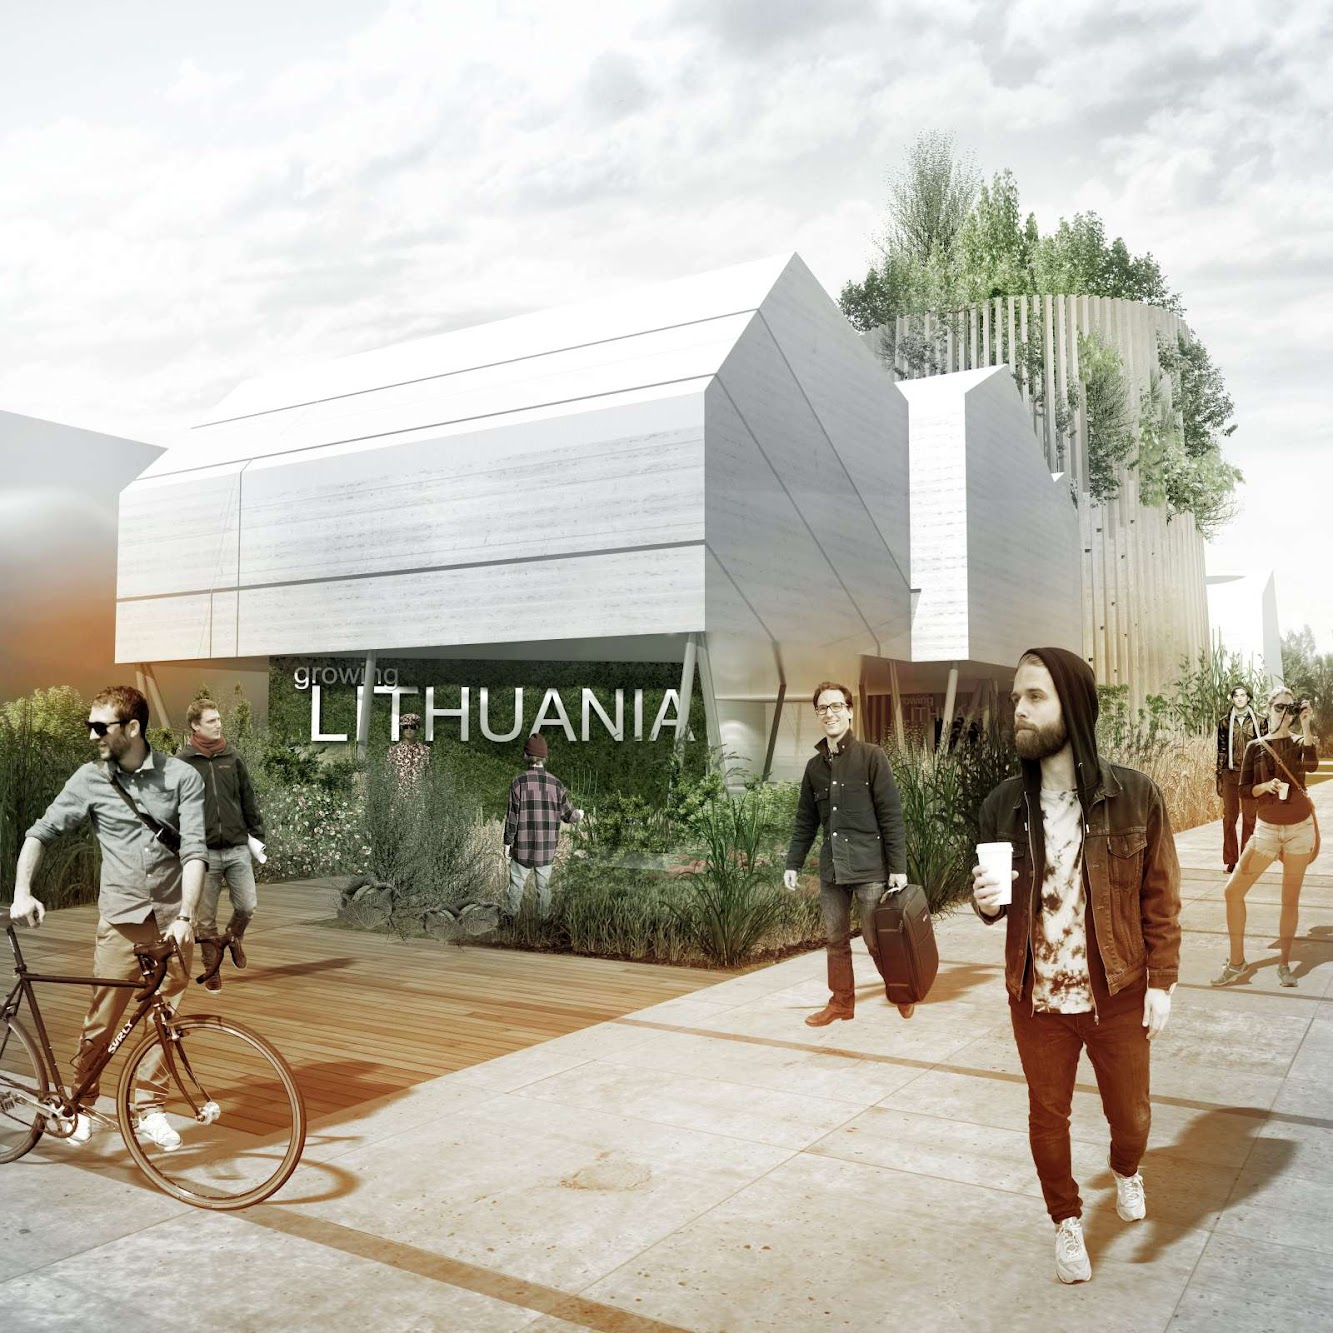 Lithuanian Pavilion Expo 2015 by Vilnius Architecture Studio